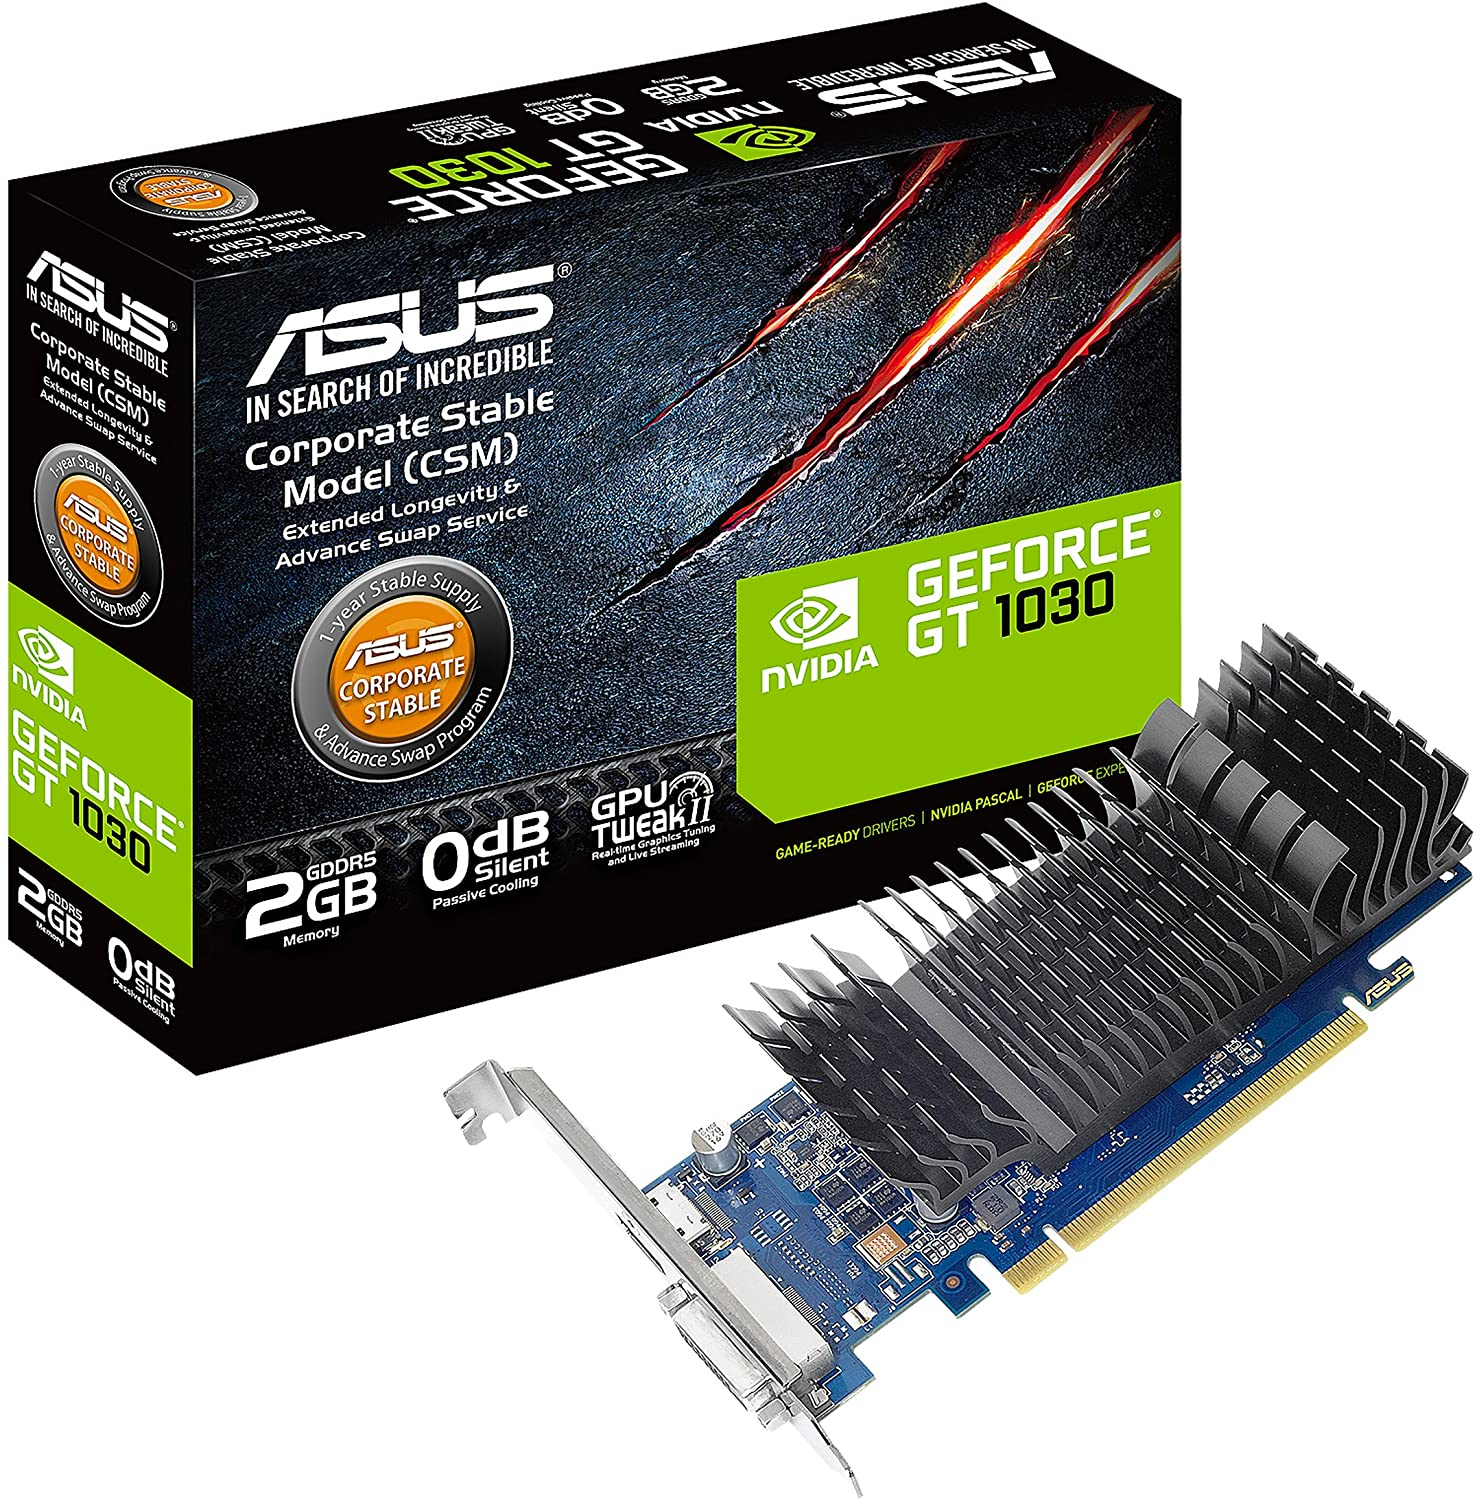 PC Components/ Video Adapter/ PCI Express 2GB/ ASUS GeForce  GT 1030 2GB GDDR5